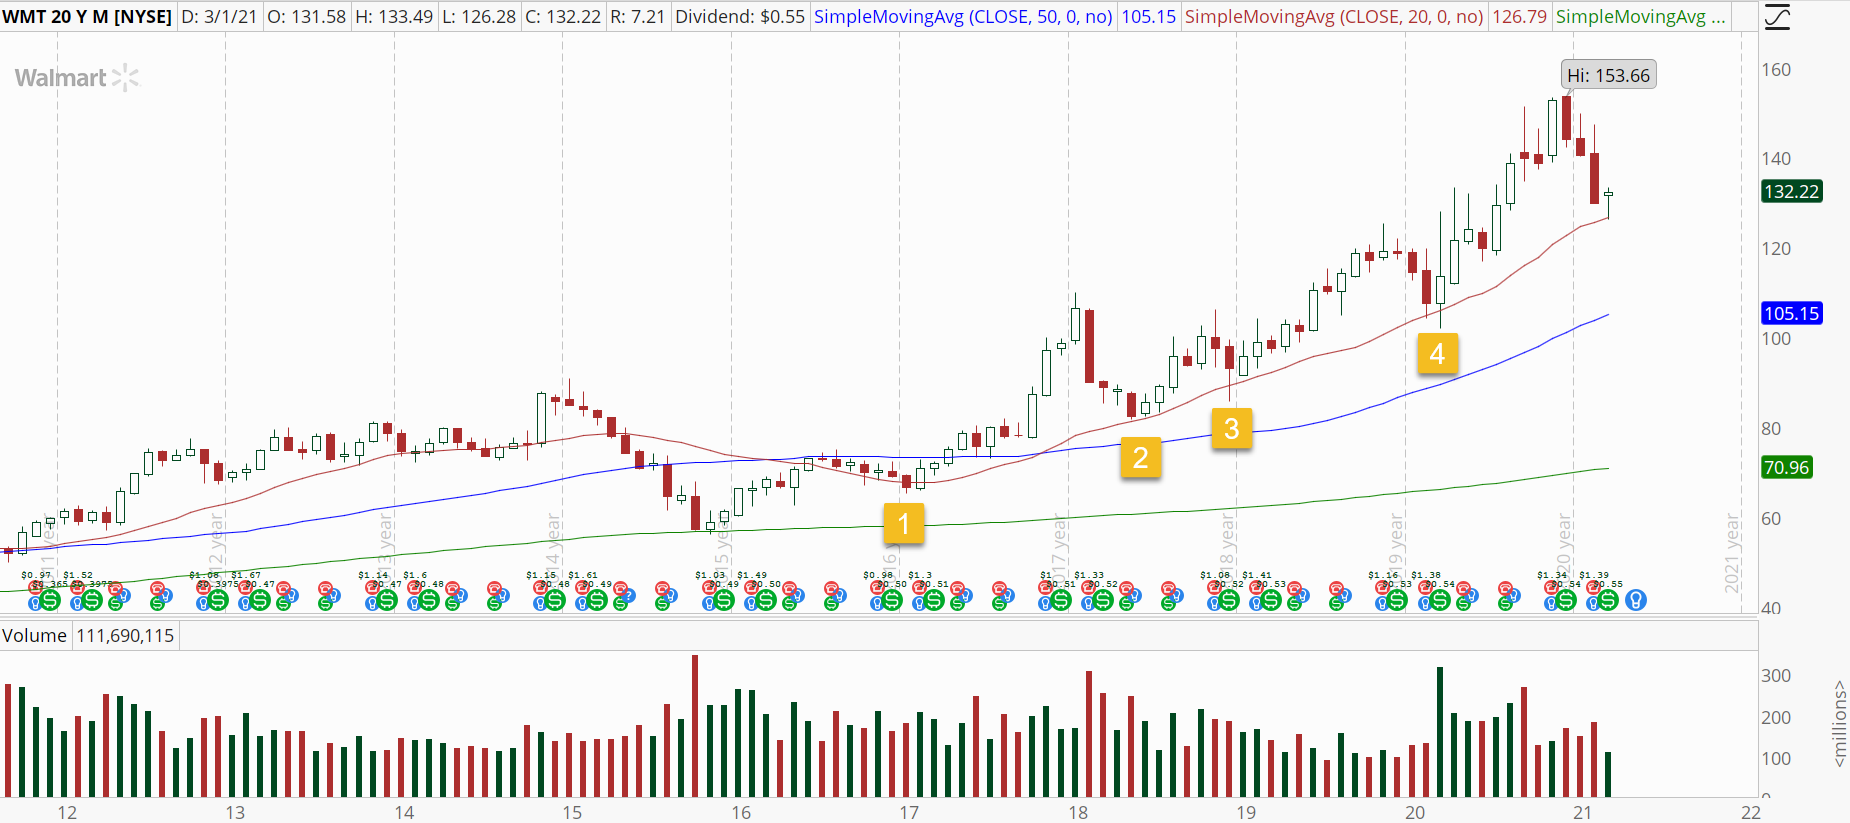 Walmart (WMT) monthly chart with bull retracement